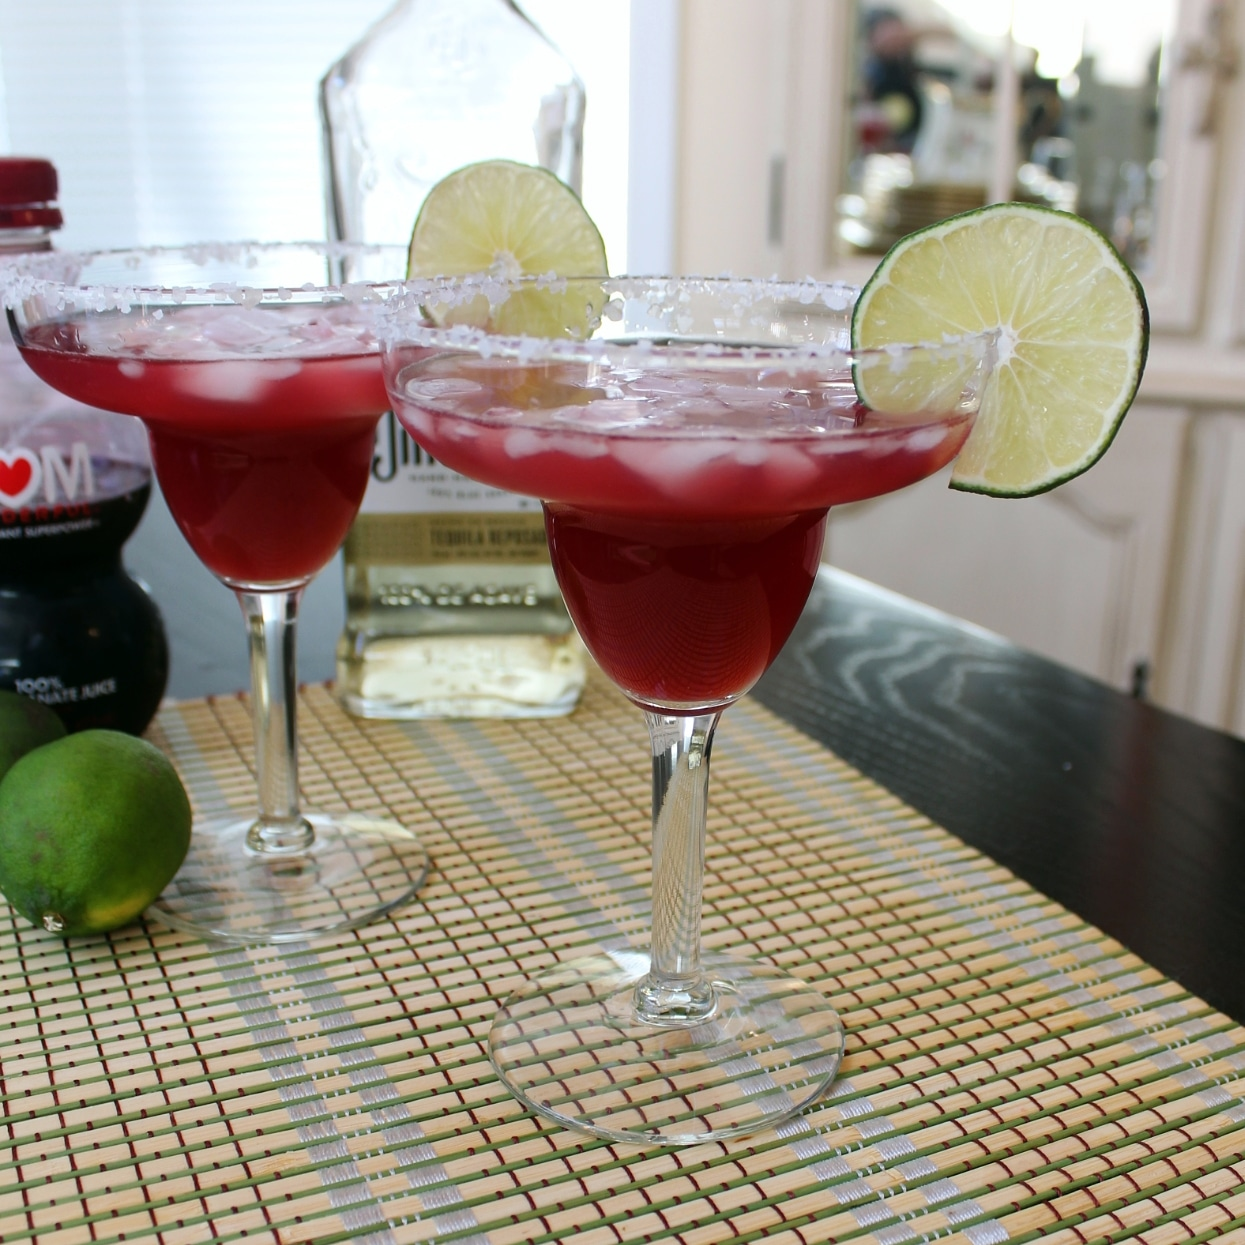 pomegranate margaritas in a glass with salt rim and lime wedge